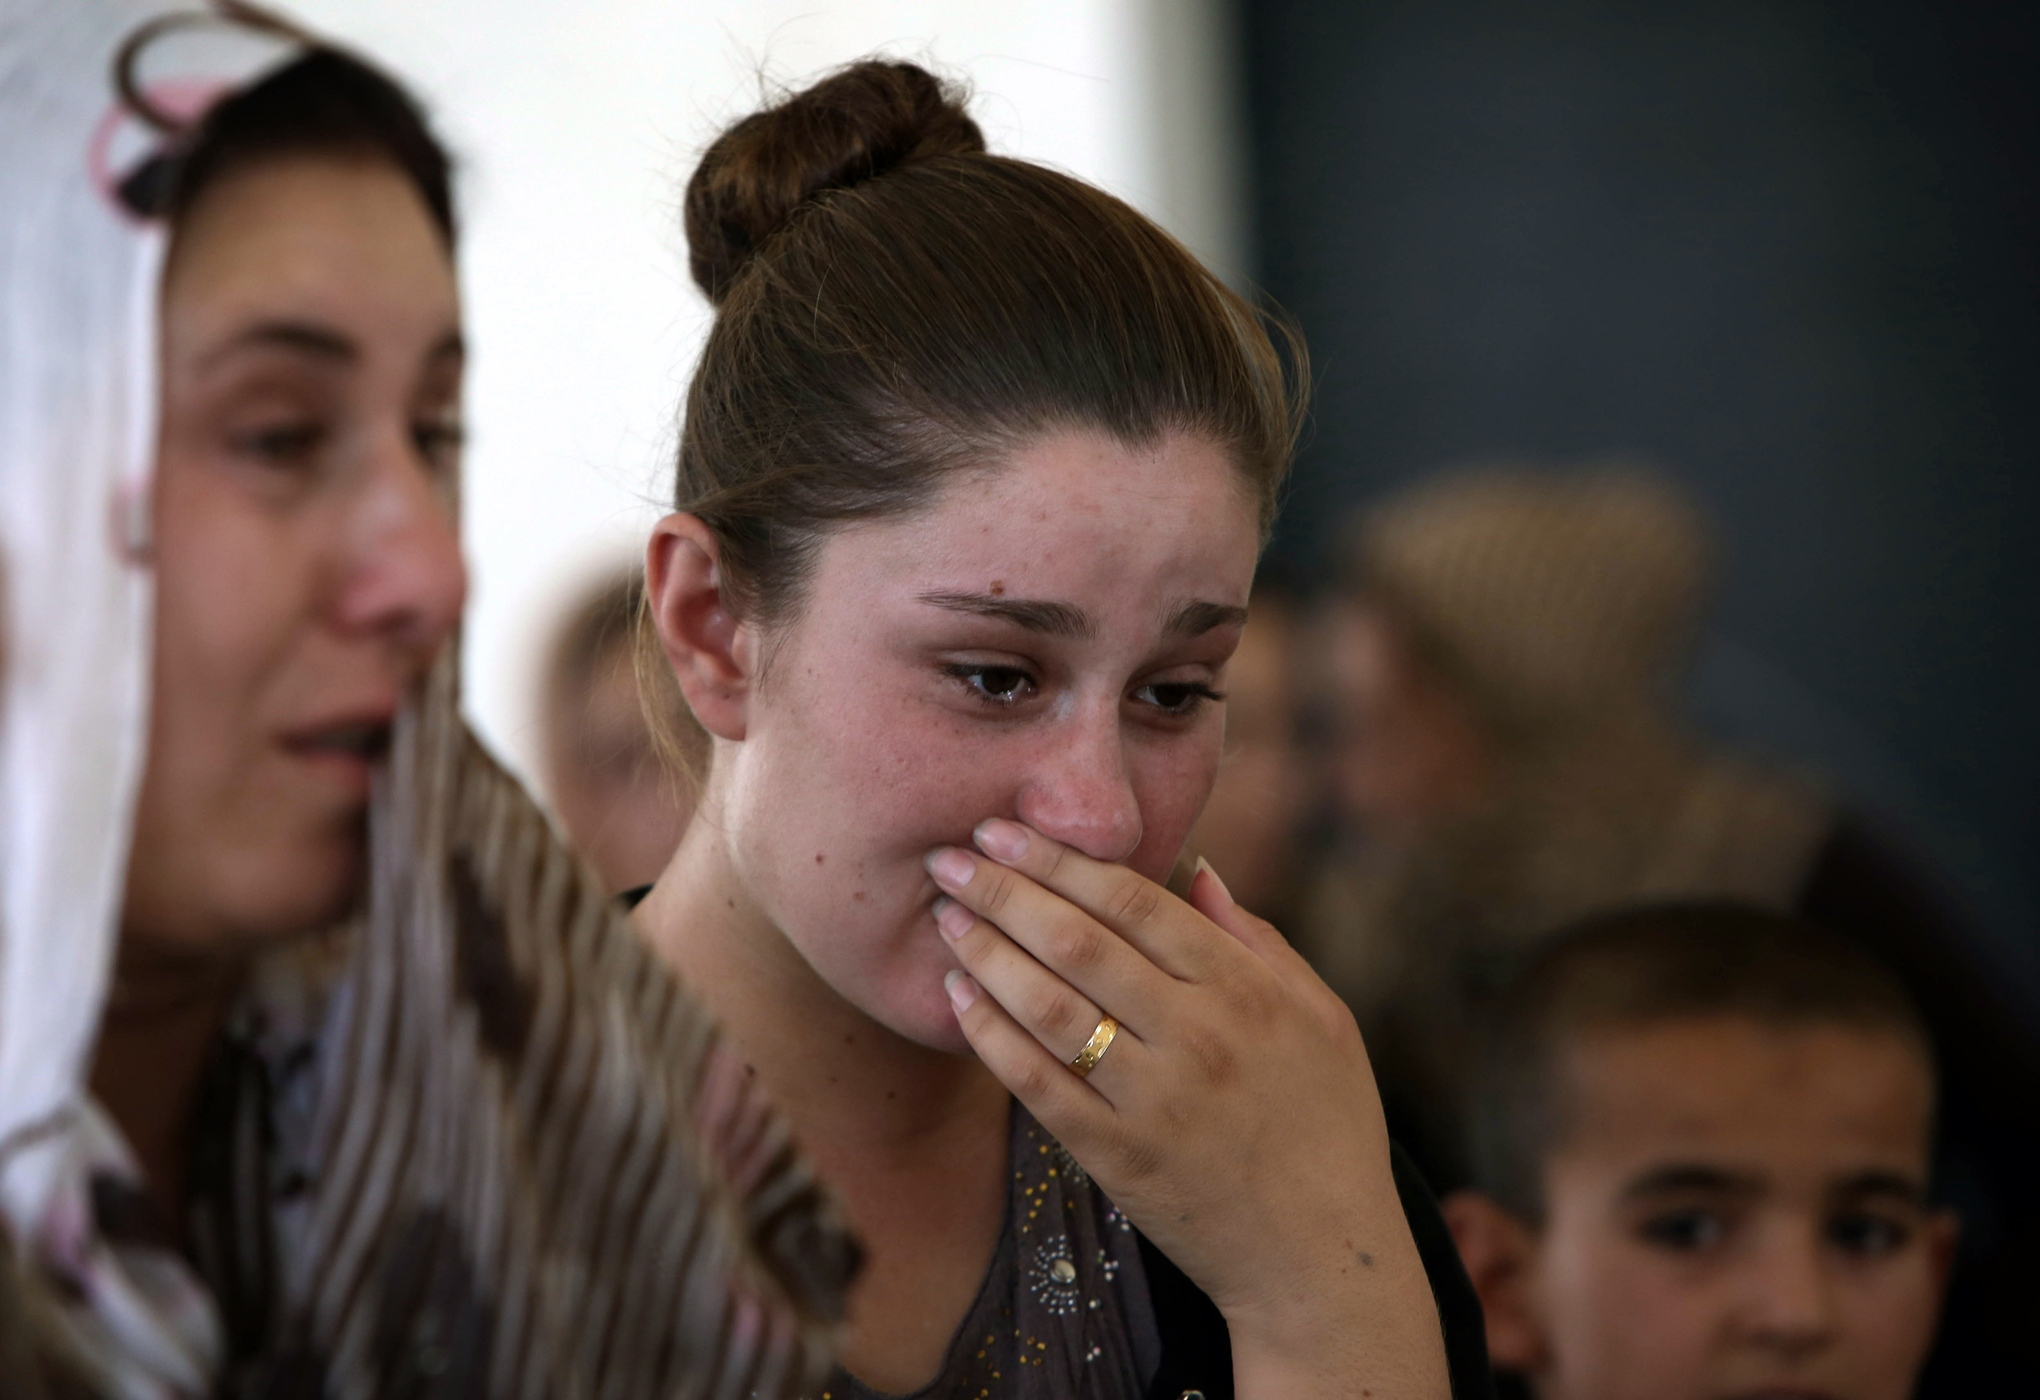 IRAQ-UNREST-YAZIDIS